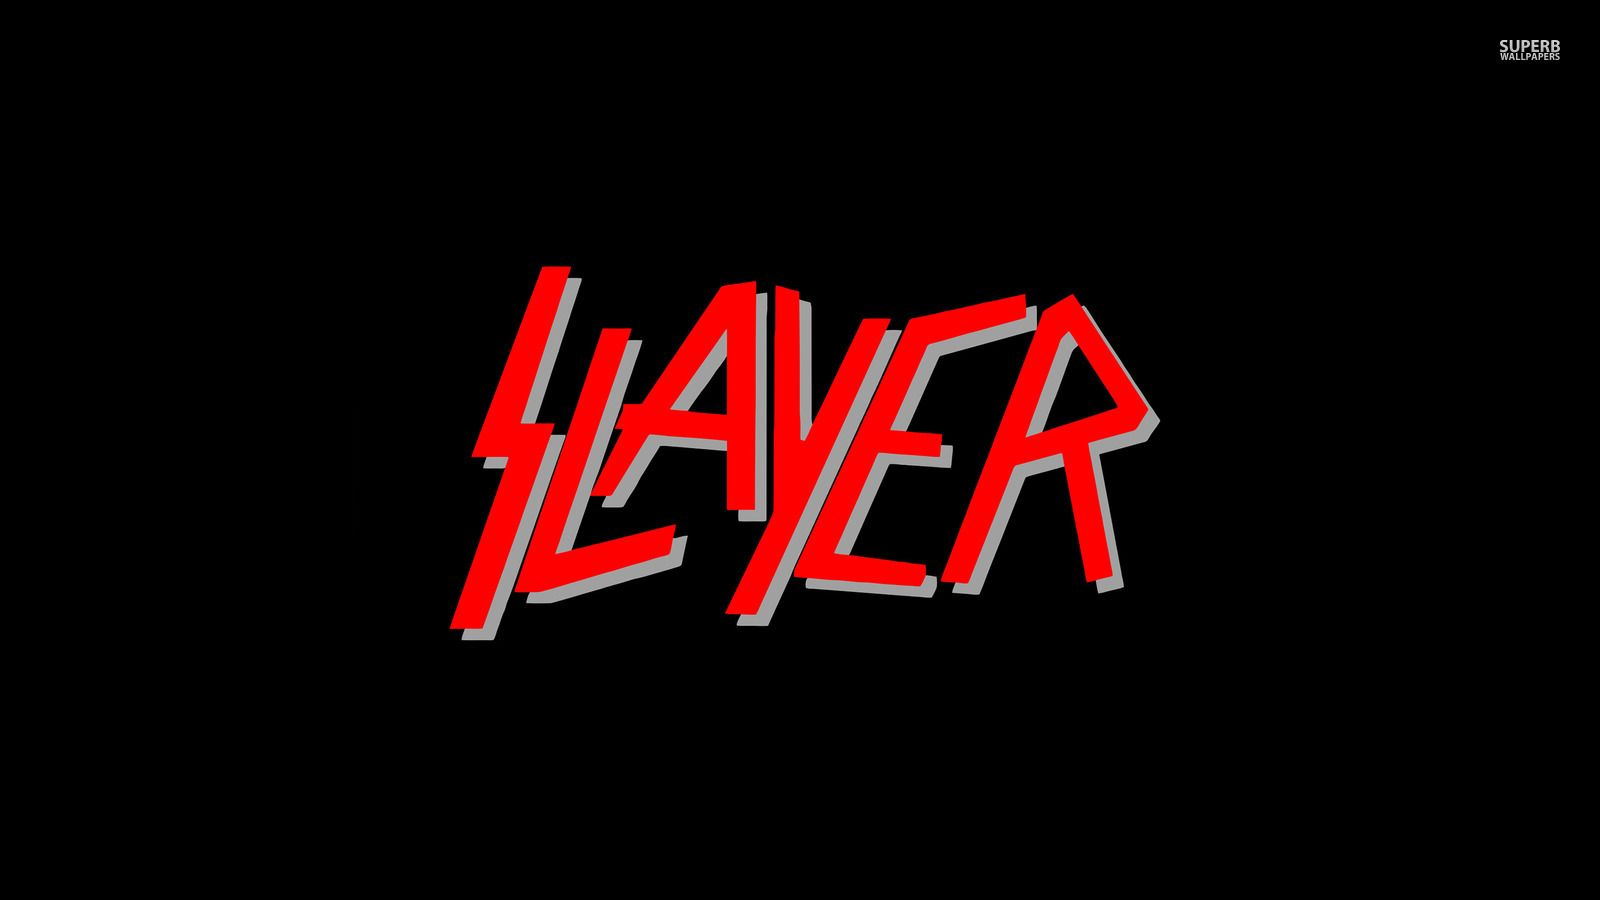 1600x900 Heavy Metal images Slayer HD wallpaper and background photos (38687137)